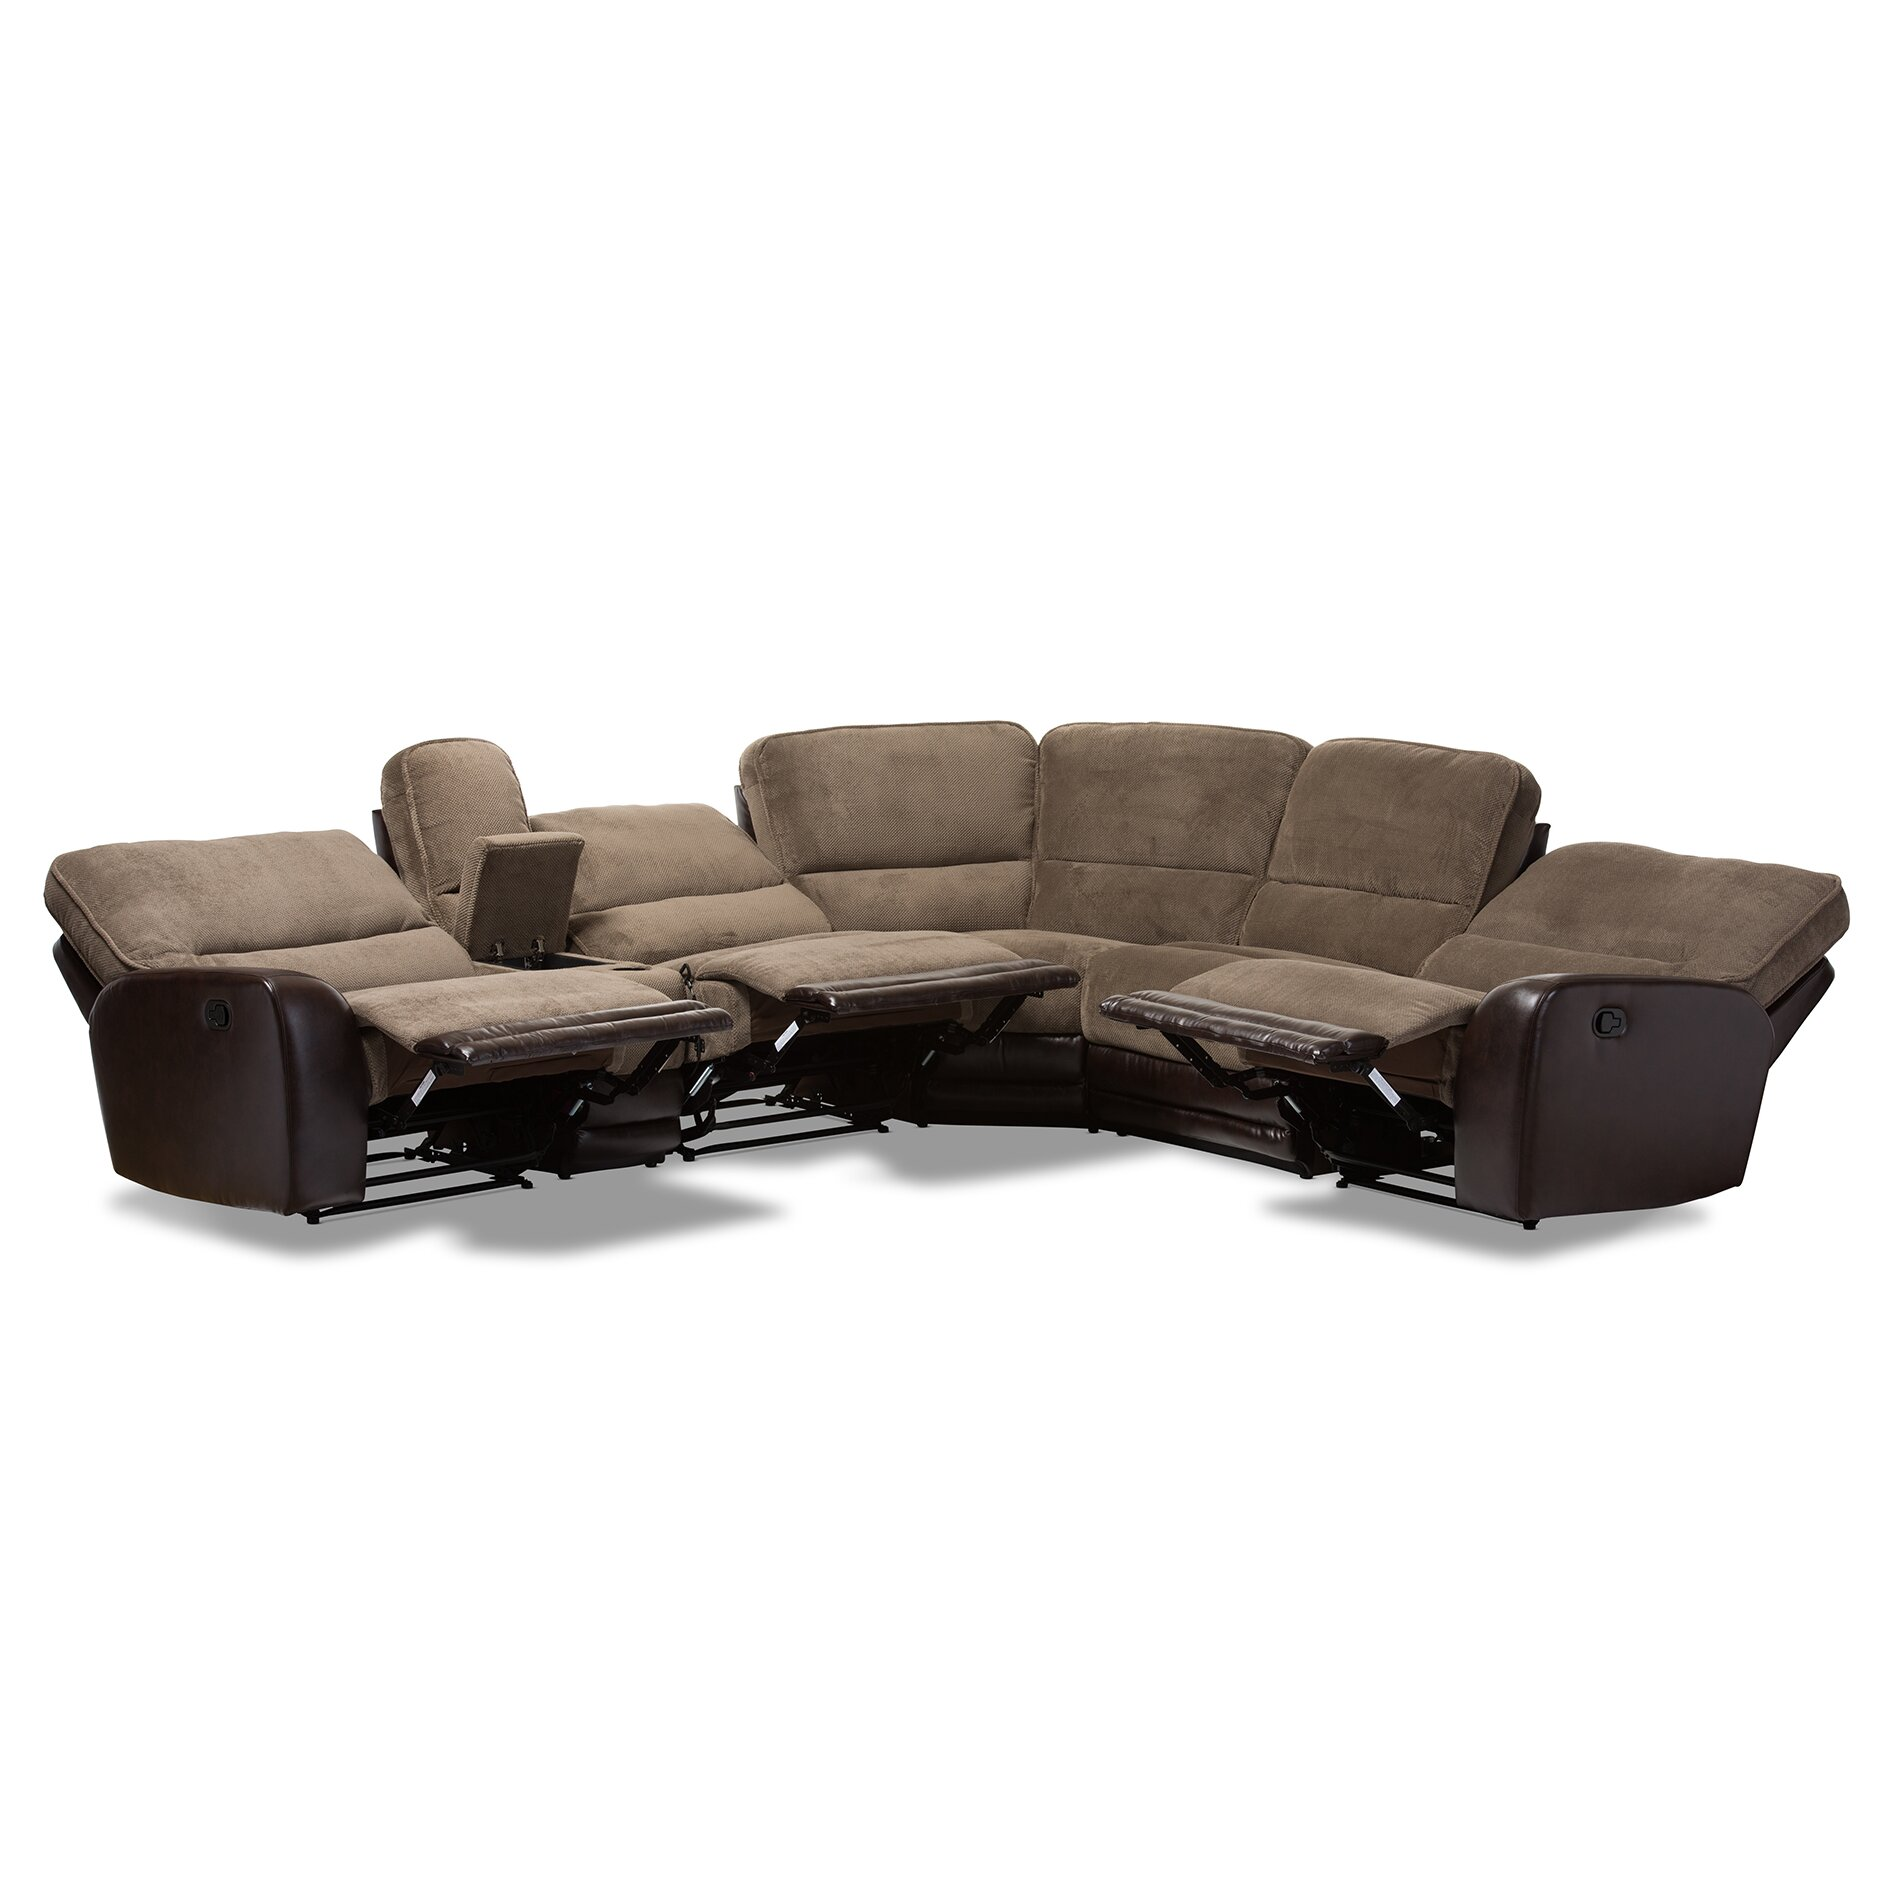 Wholesale Interiors Baxton Studio Sectional Wayfair : Baxton Studio Mia Modern and Contemporary Brown Towel Fabric and Brown Faux Leather Two tone 7 Piece Sectional Sofa 1421 7130 WF from www.wayfair.com size 1897 x 1897 jpeg 256kB